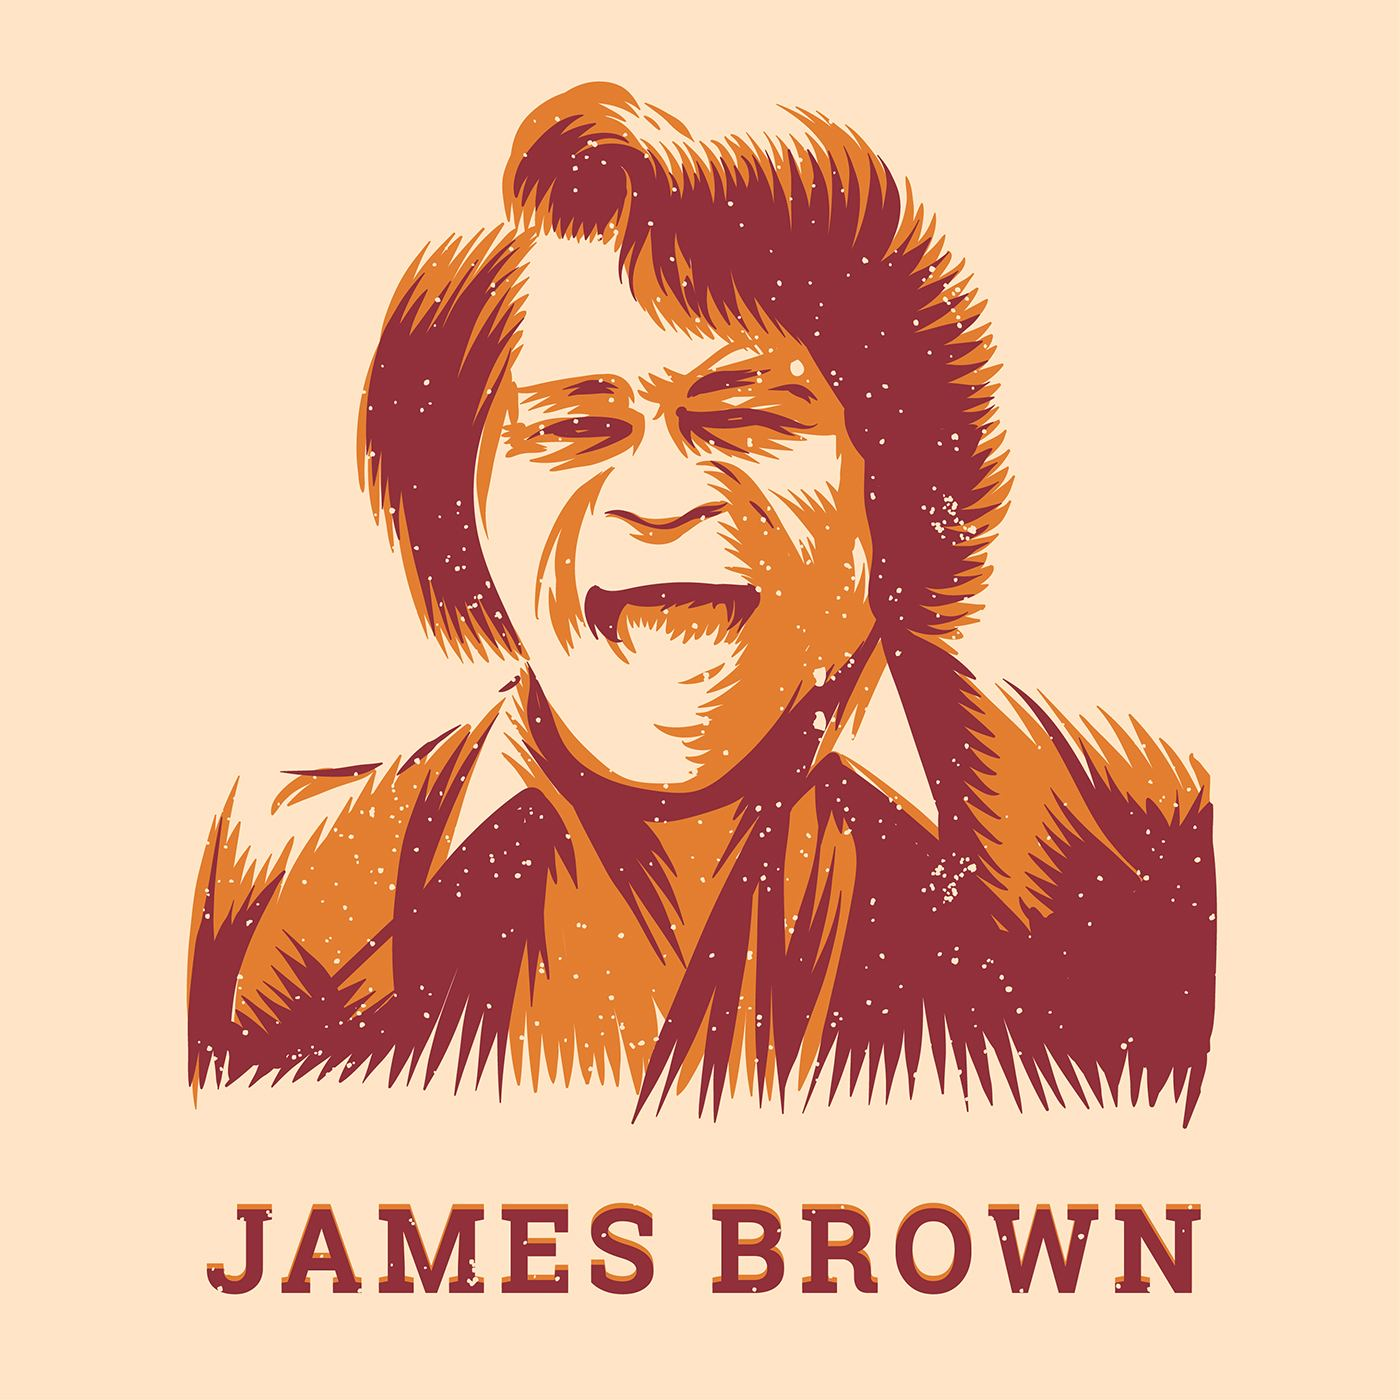 "James Brown, un músico estajanovista con grito de guerra: I feel good<span class=""wtr-time-wrap after-title""><span class=""wtr-time-number"">13</span> minutos de lectura</span>"